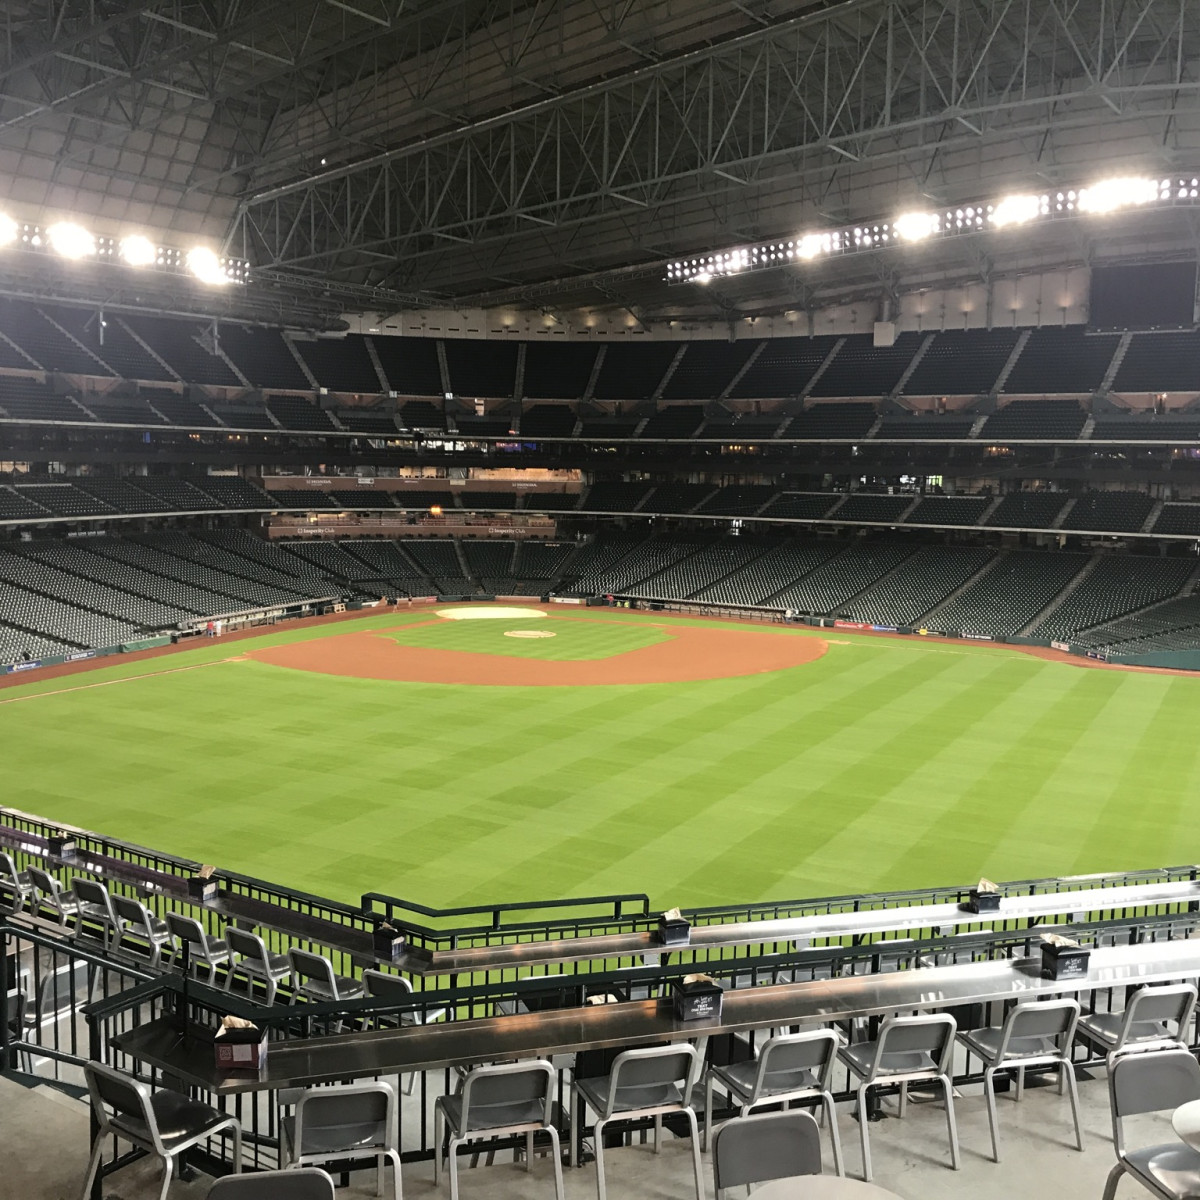 Astros Minute Maid park center field view